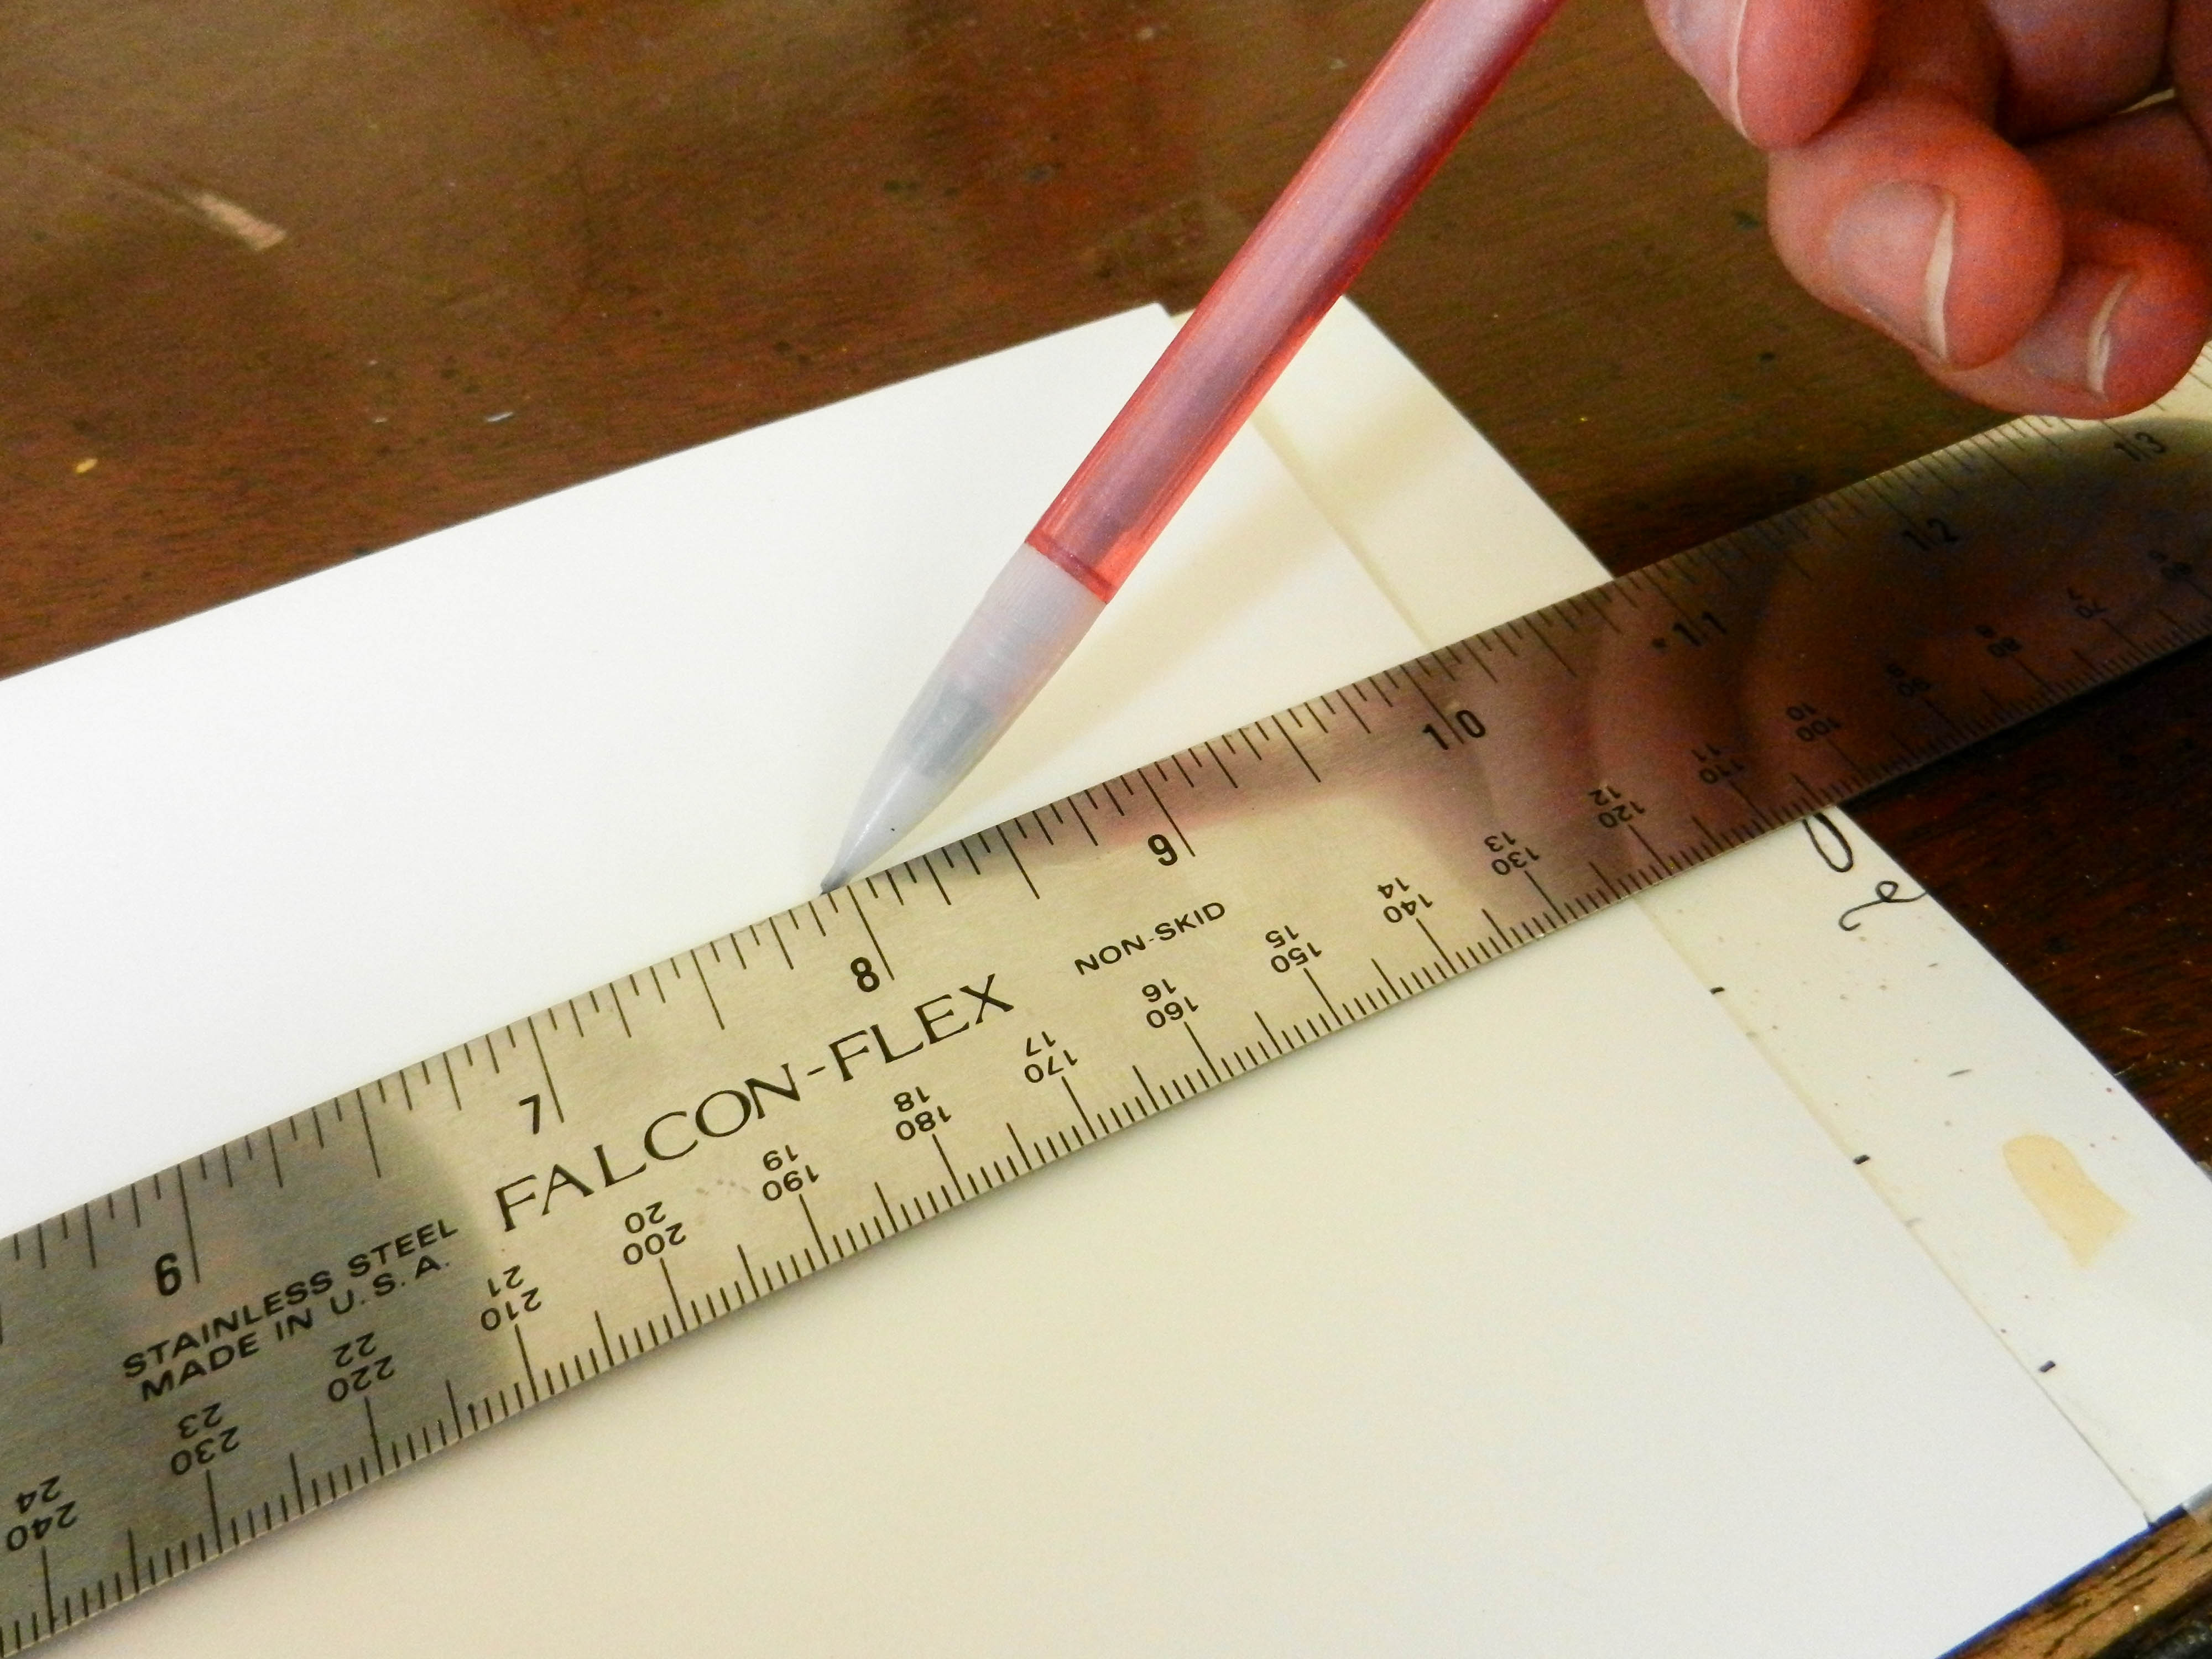 Drawing Straight Lines With A Ruler Worksheets : Square lined exercise book images stock photos vectors